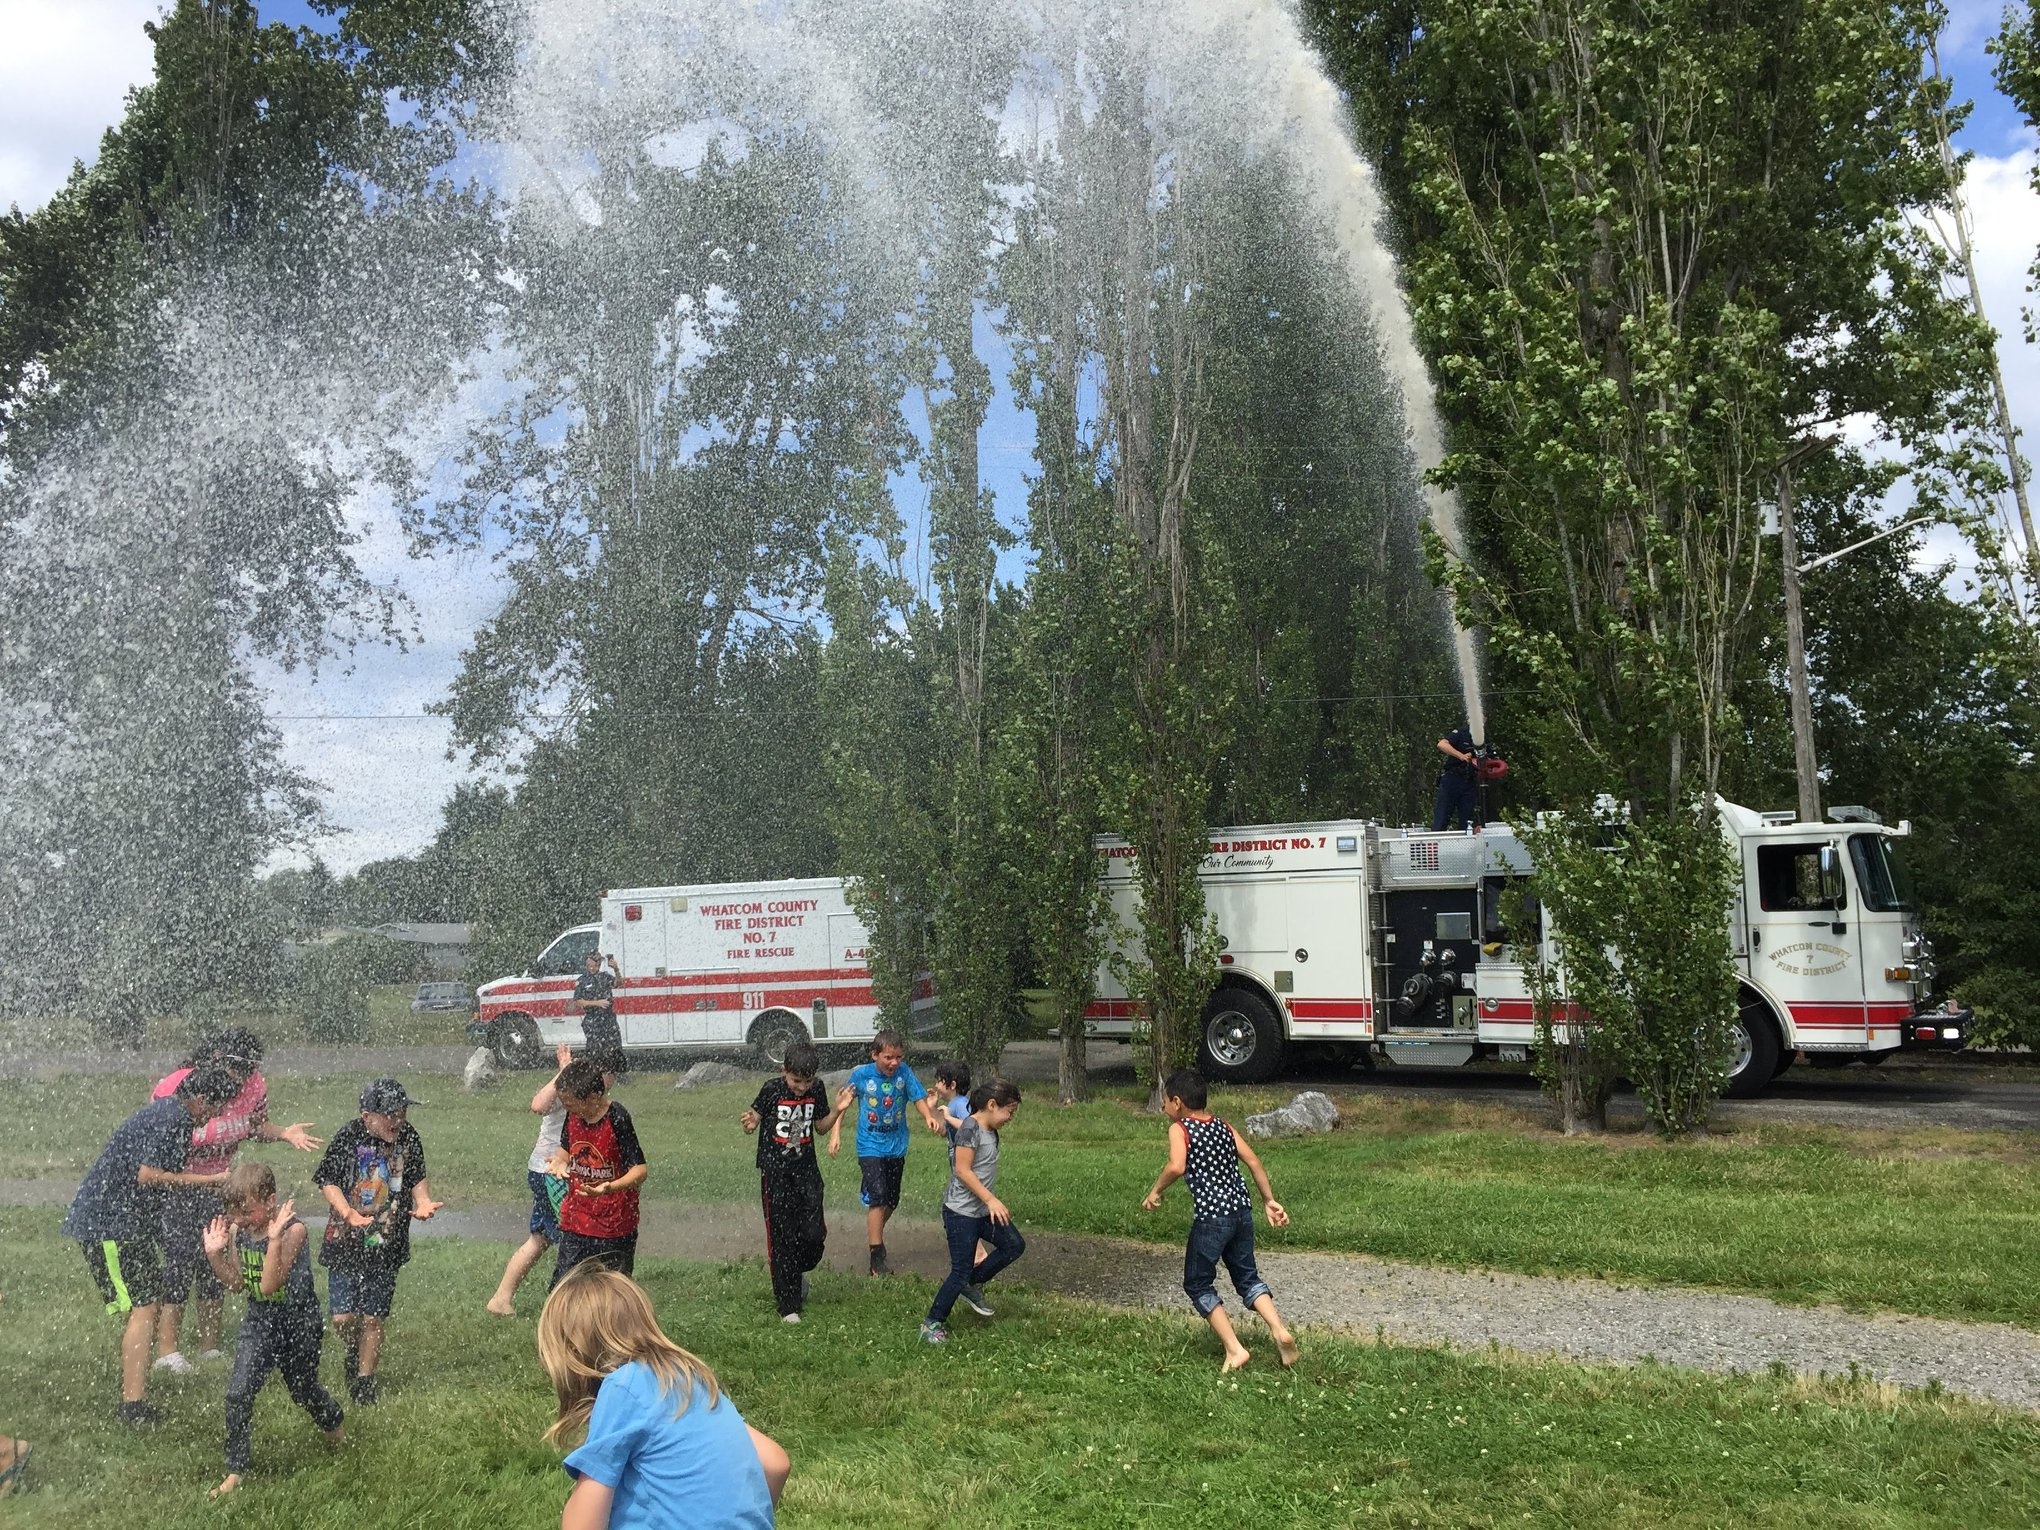 WCFD7 provides a cooling off opportunity in VanderYacht Park (September 9, 2019). Photo courtesy of City of Ferndale